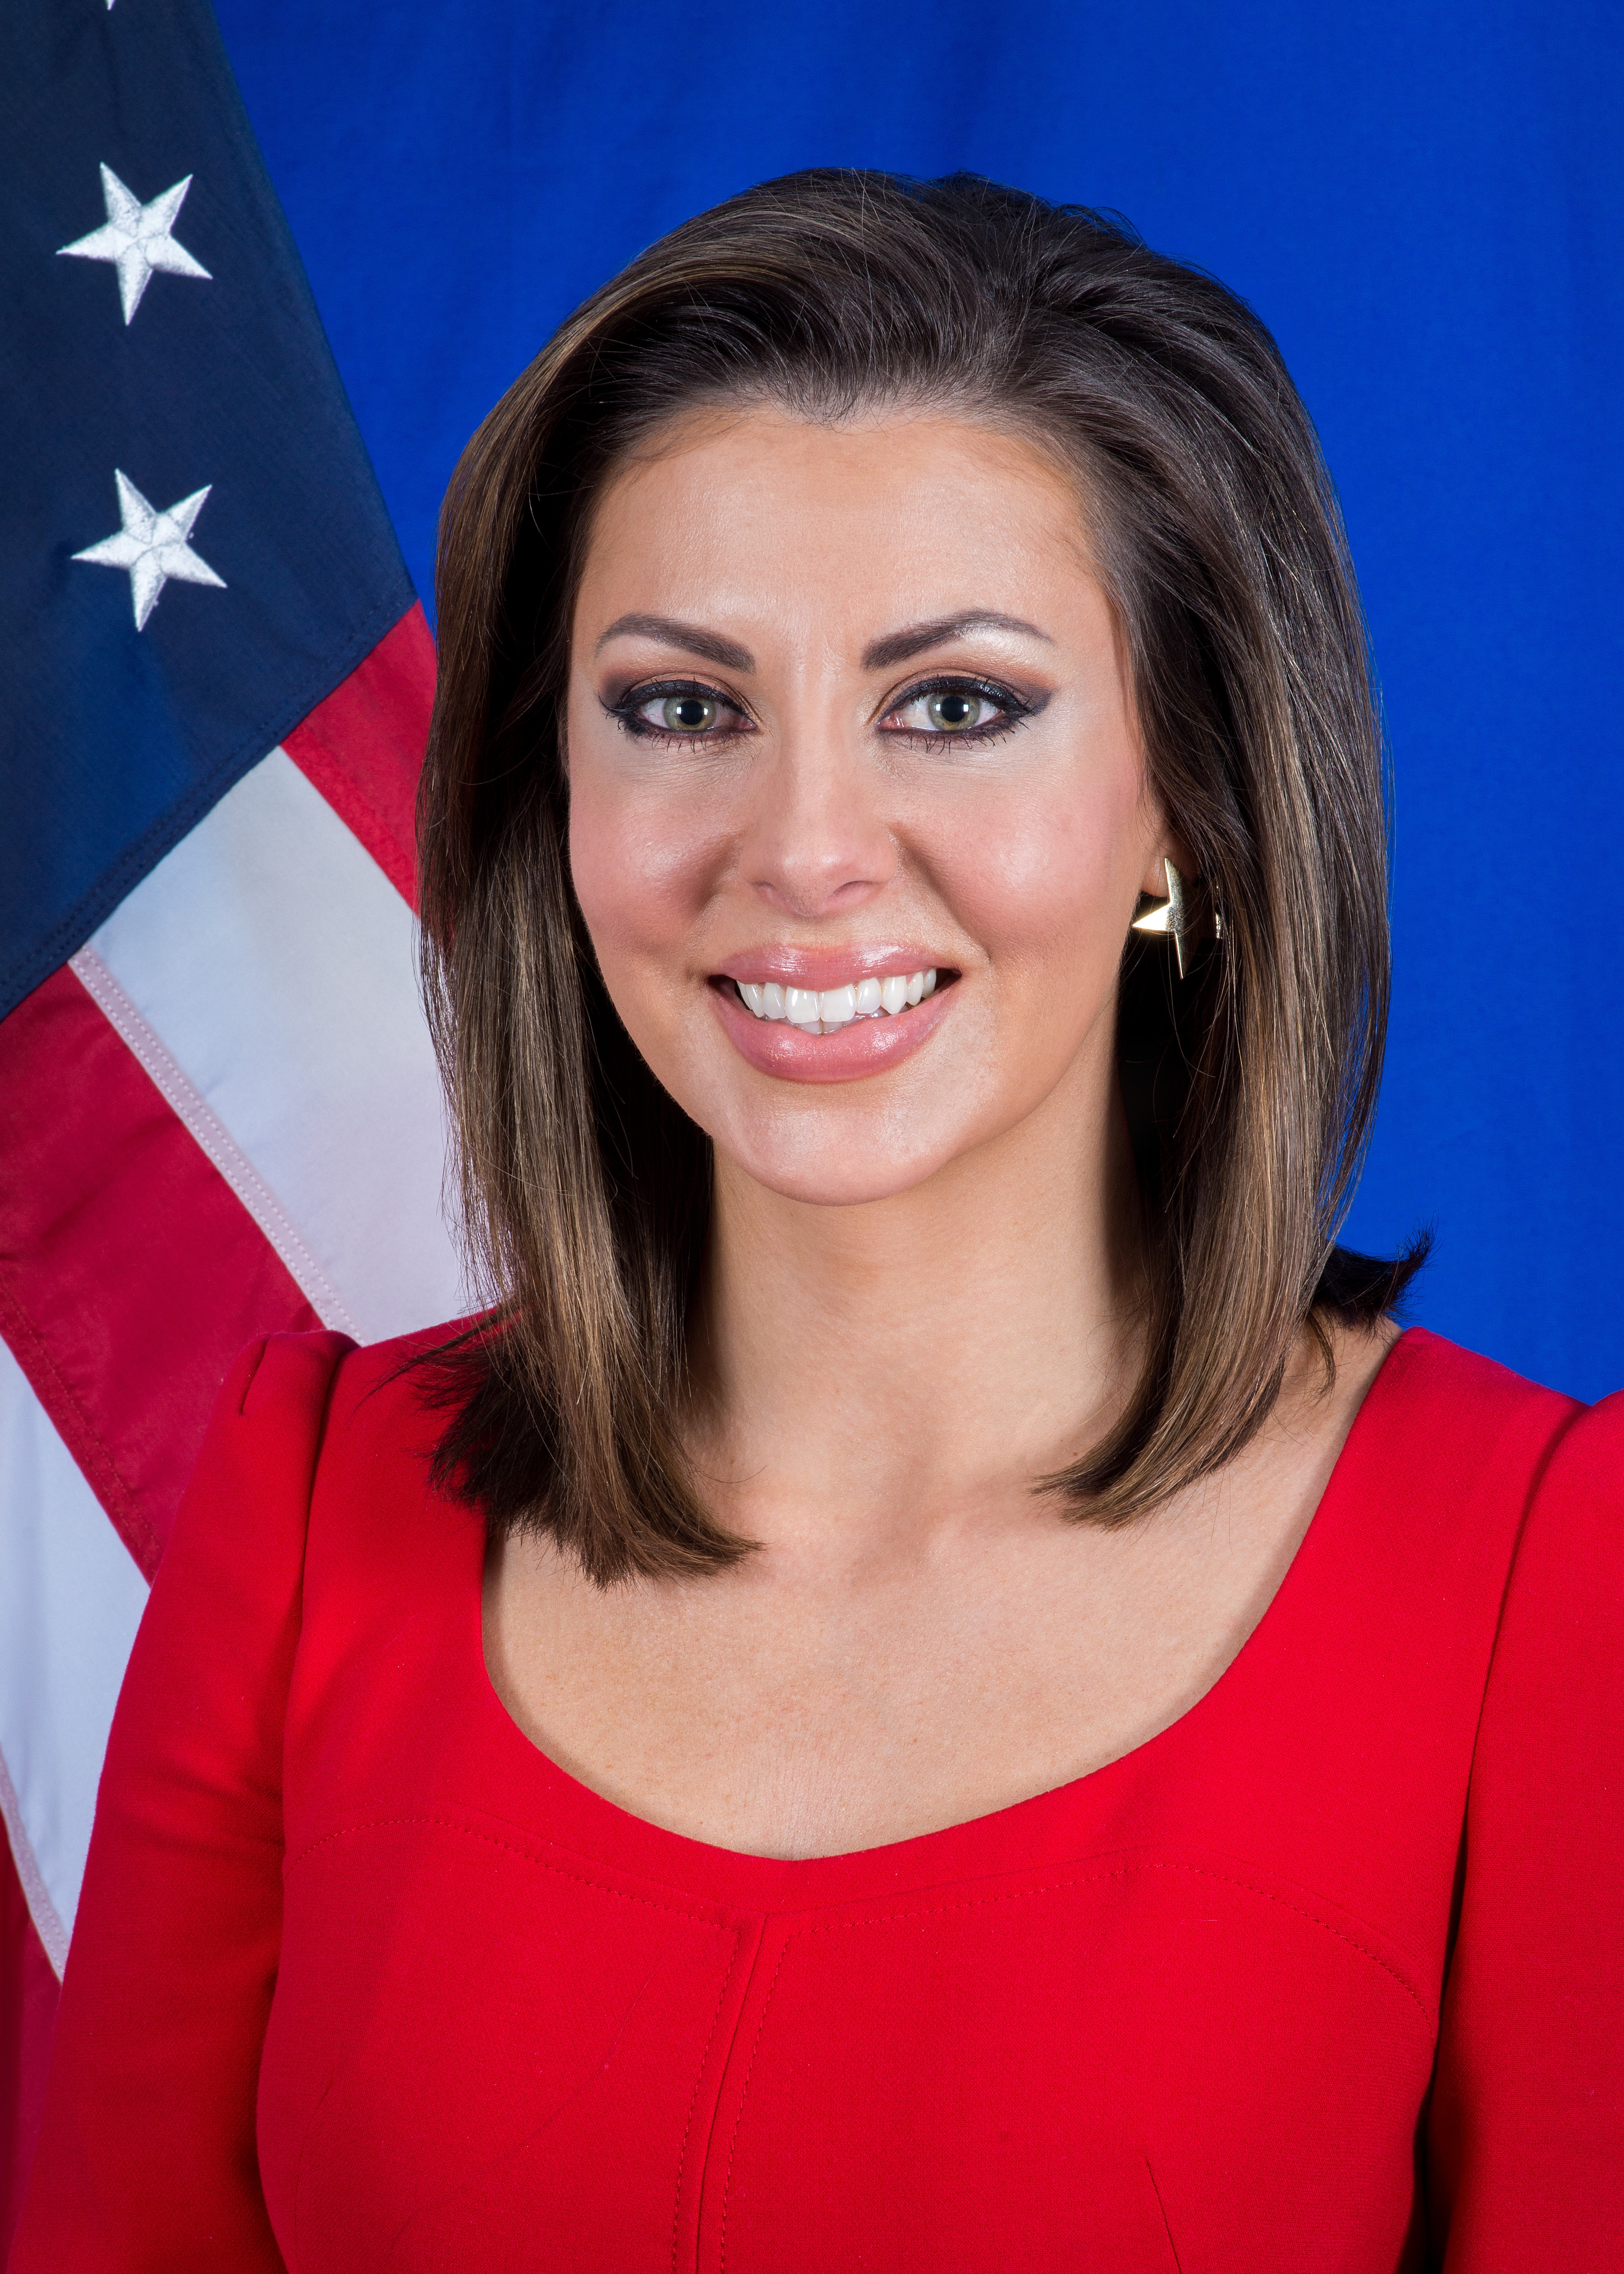 Morgan Ortagus was sworn in as U.S. State Department Spokesperson